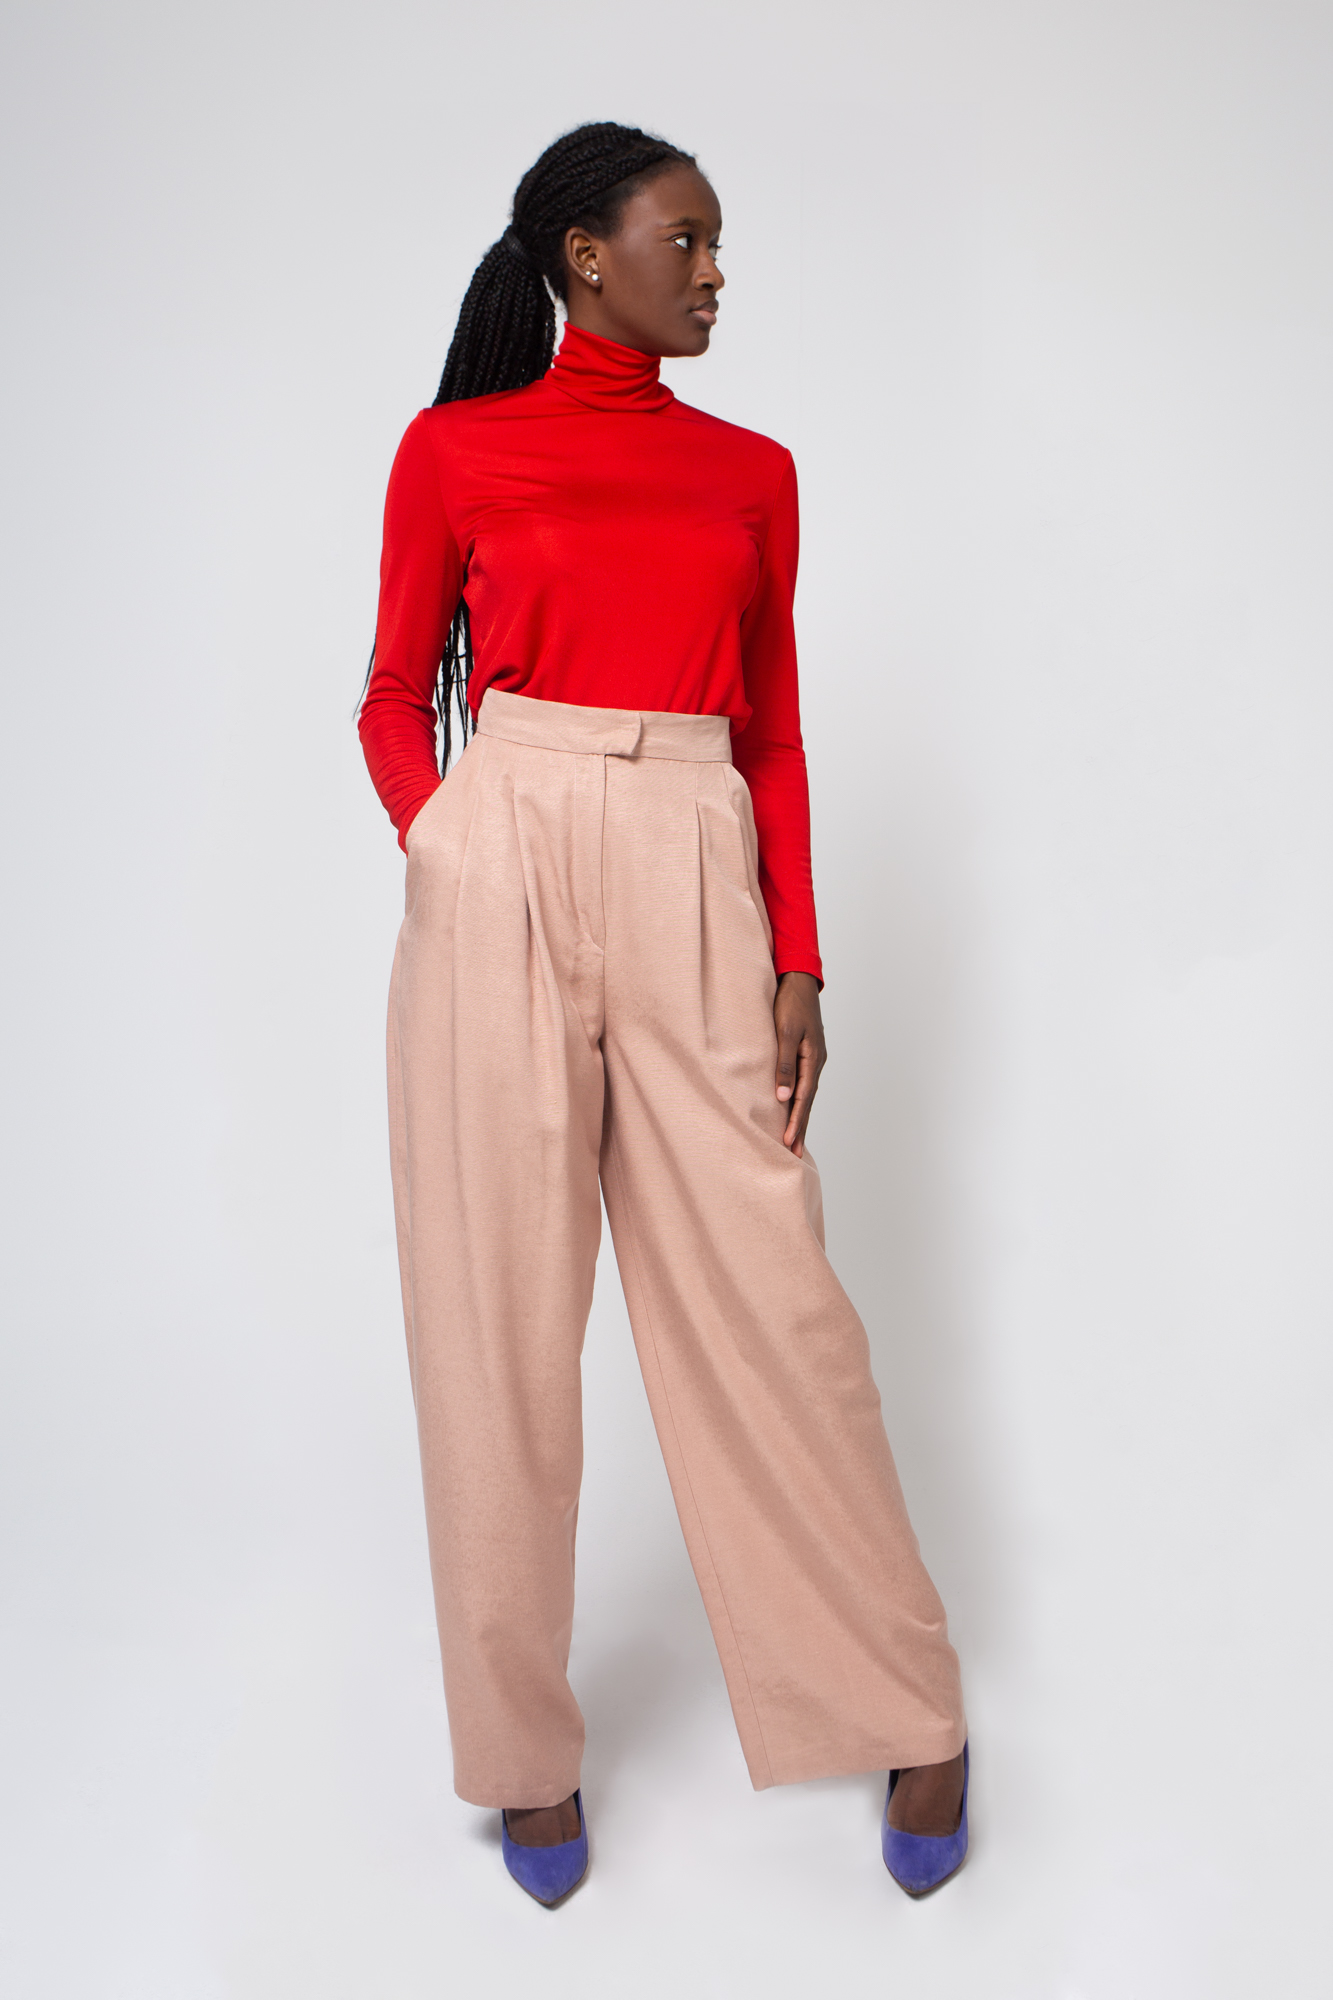 Lookbook 2020 pink and red